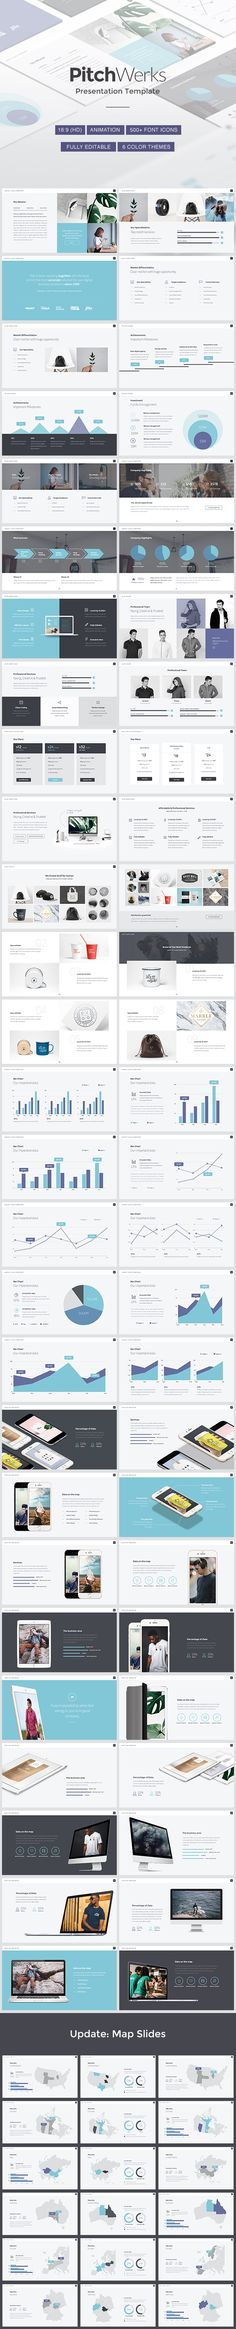 Professional Pitch Powerpoint Template — Powerpoint PPTX #PP #white space • Download ➝ https://graphicriver.net/item/professional-pitch-powerpoint-template/20356405?ref=pxcr